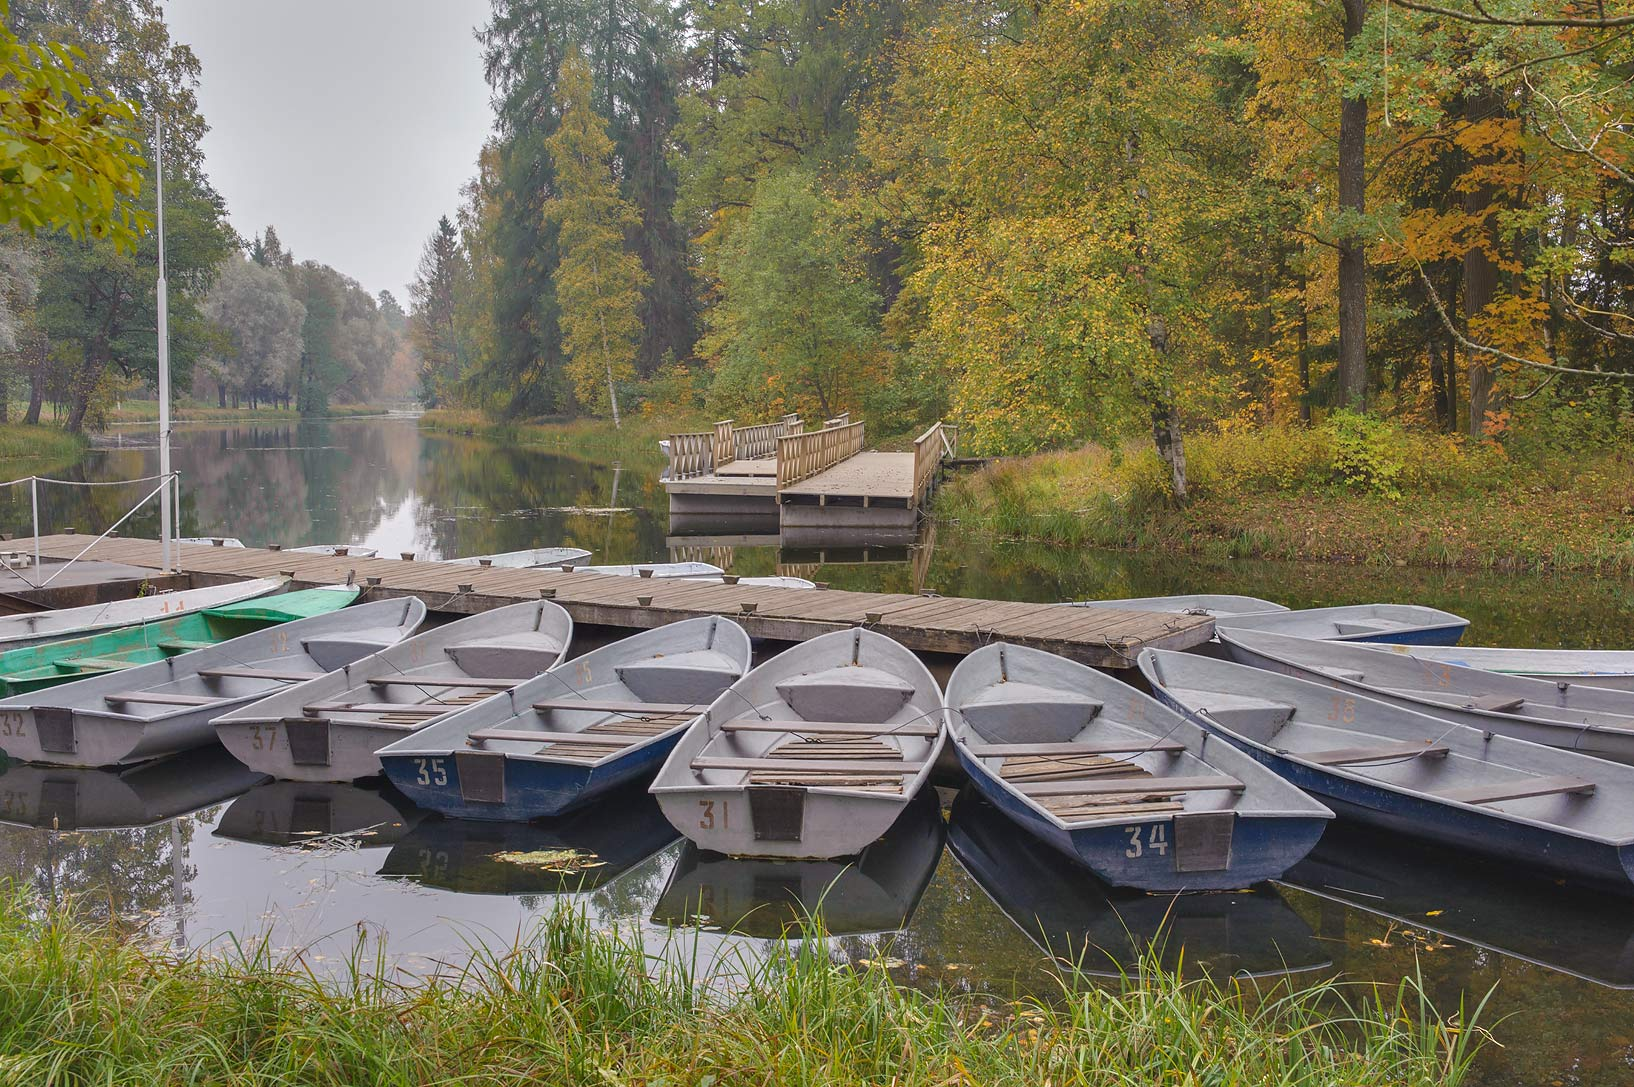 Boat rental at north end of Beloe Lake in Gatchina, a suburb of St.Petersburg. Russia